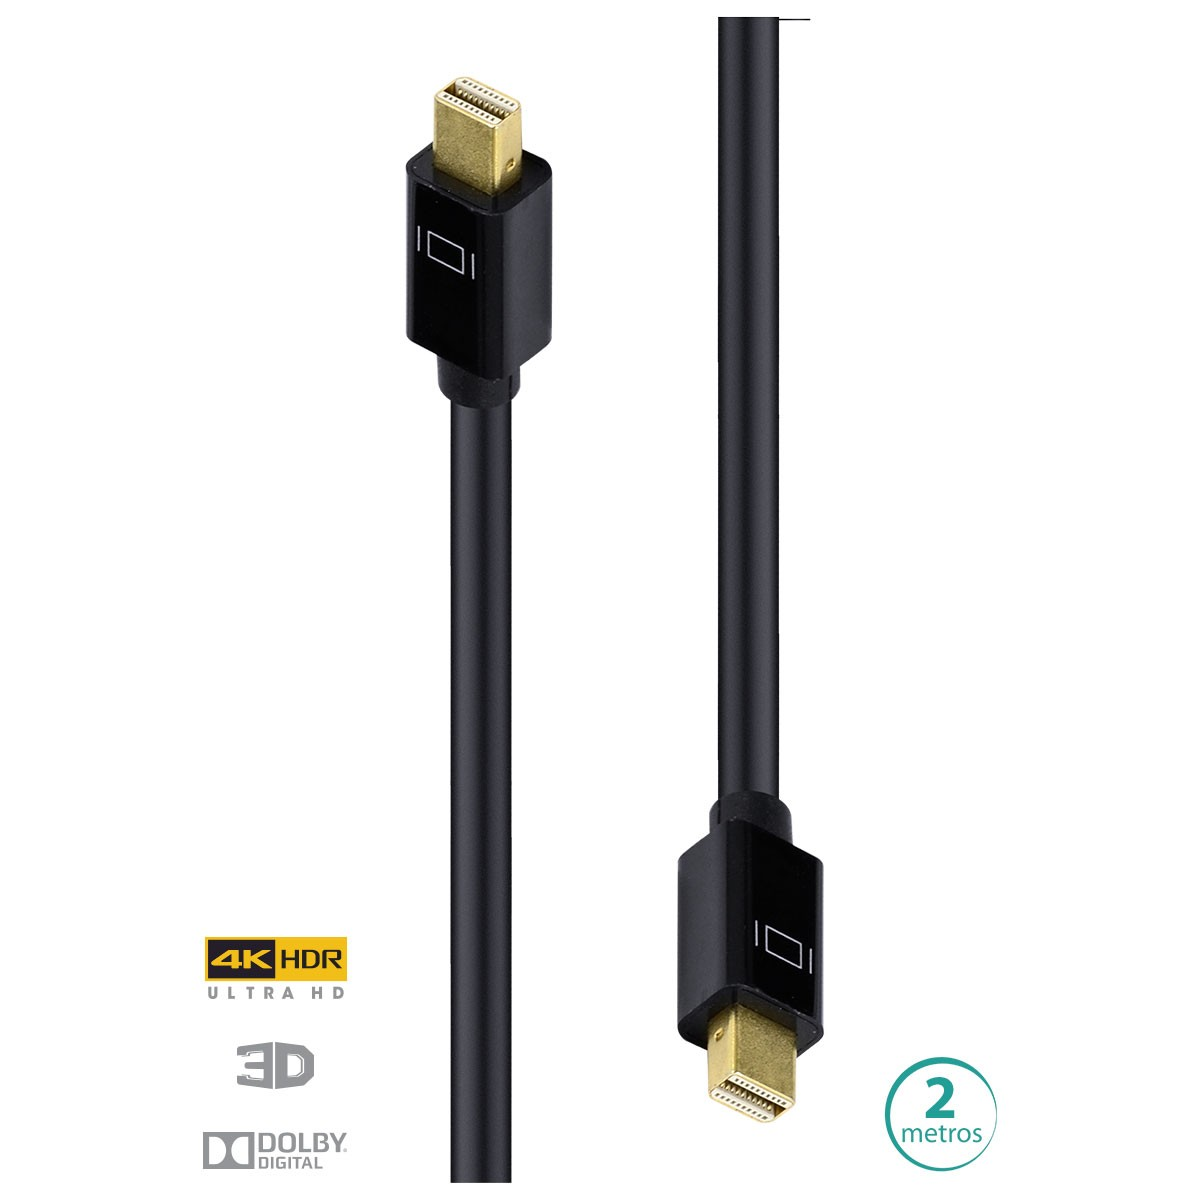 CABO MINI DISPLAYPORT 1.3V ULTRA HD 120HZ 2 METROS